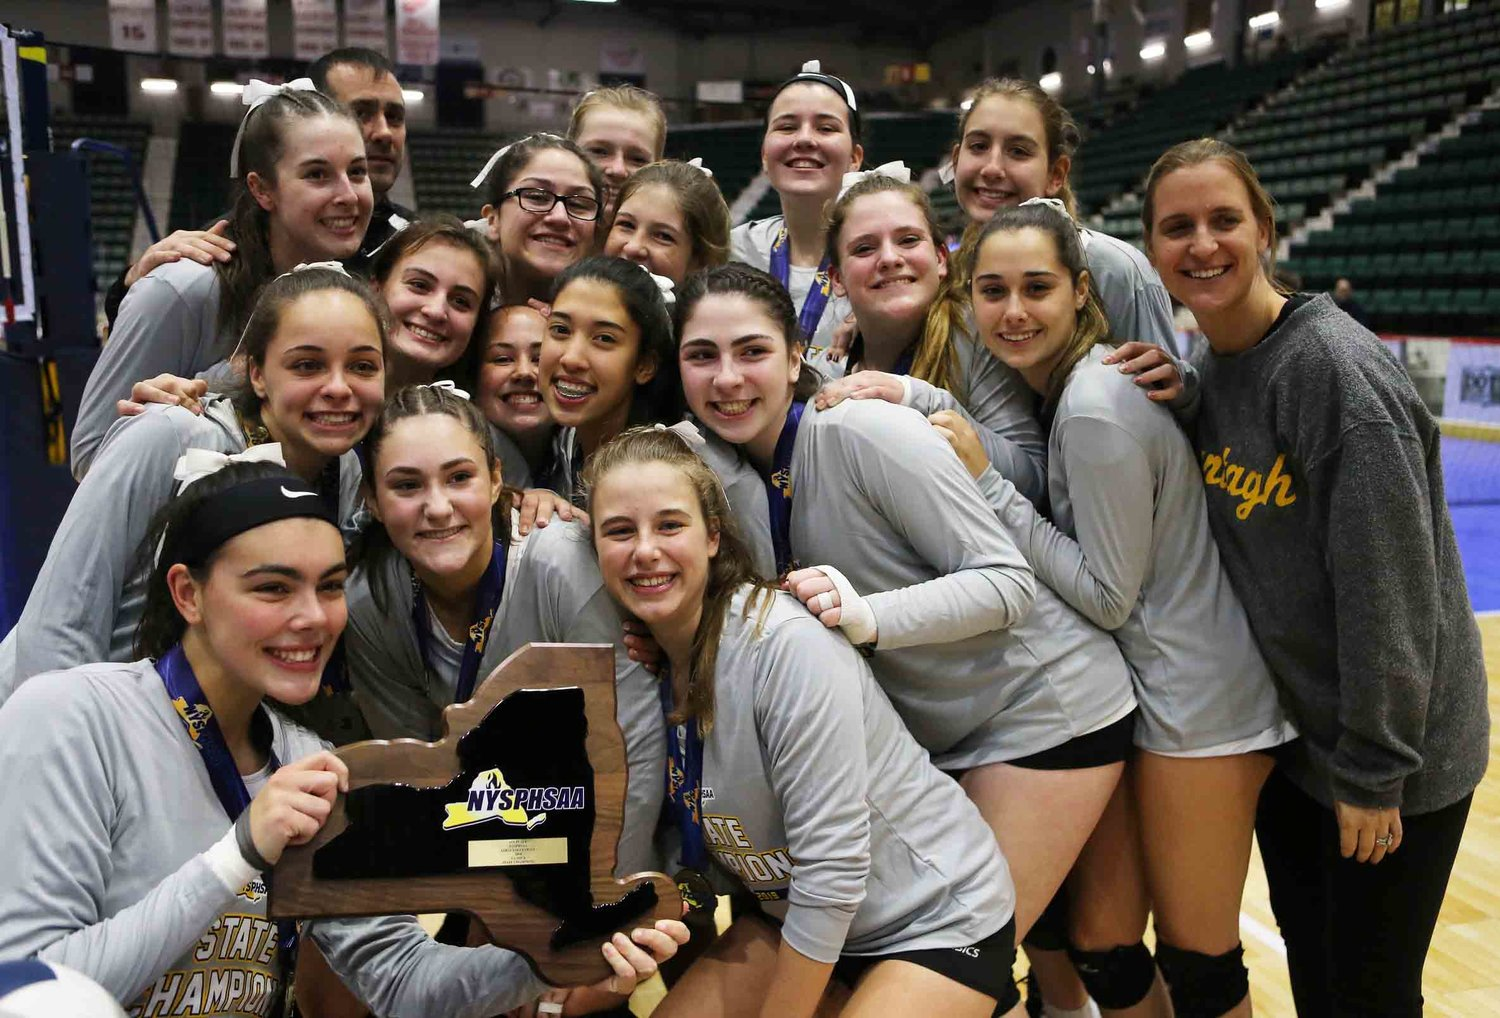 The Lady Warriors won a wild five-set marathon over Niagara Wheatfield to capture the NYS Class A title.